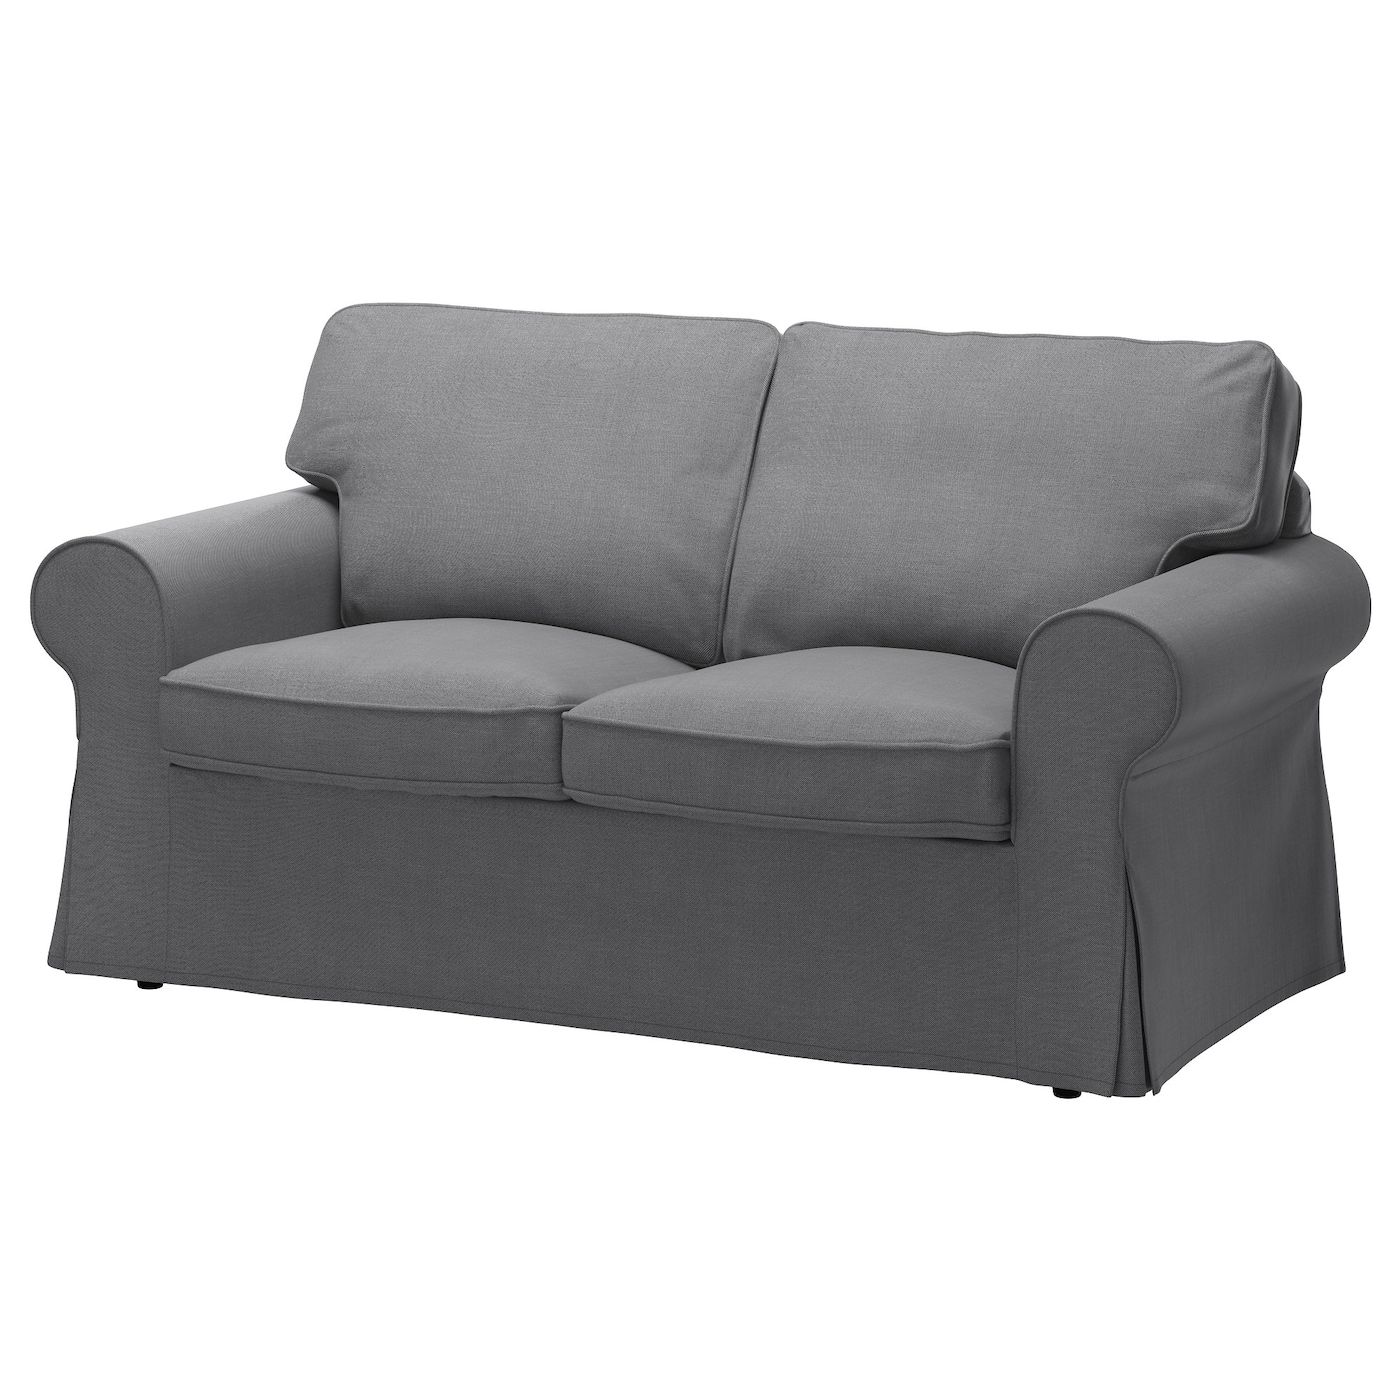 EKTORP Loveseat cover, Nordvalla dark gray is part of Ikea Living Room Ektorp - The cover is easy to keep clean as it is removable and can be machine washed  A range of coordinated covers makes it easy for you to give your furniture a new look